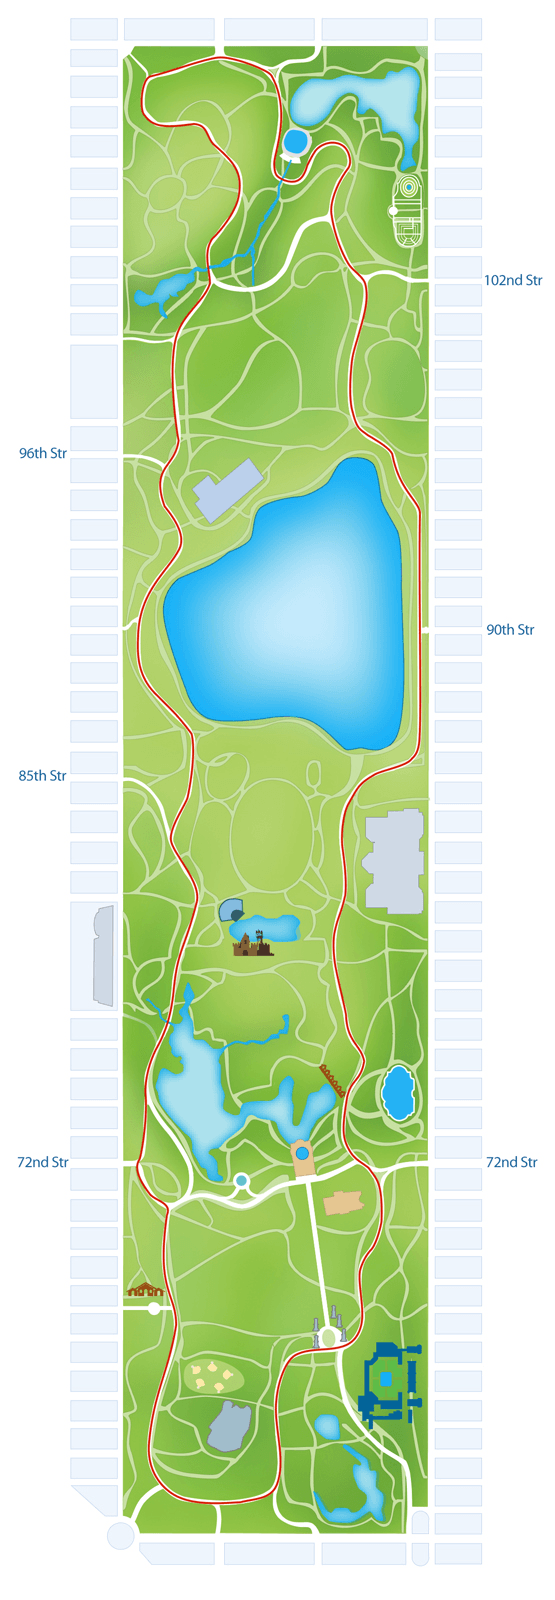 Central park walking tour route